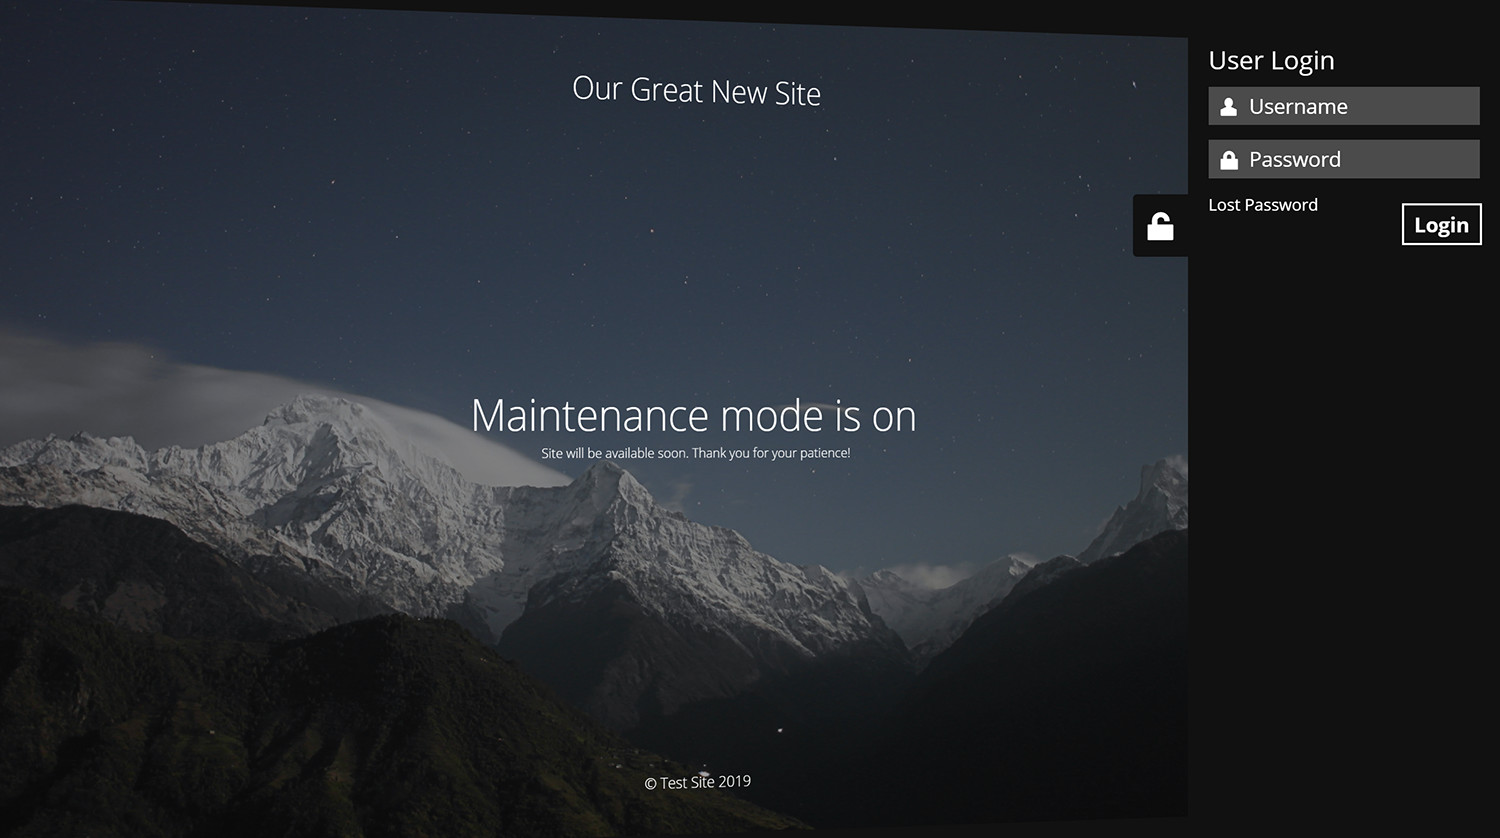 Log in form is built into the maintenance page